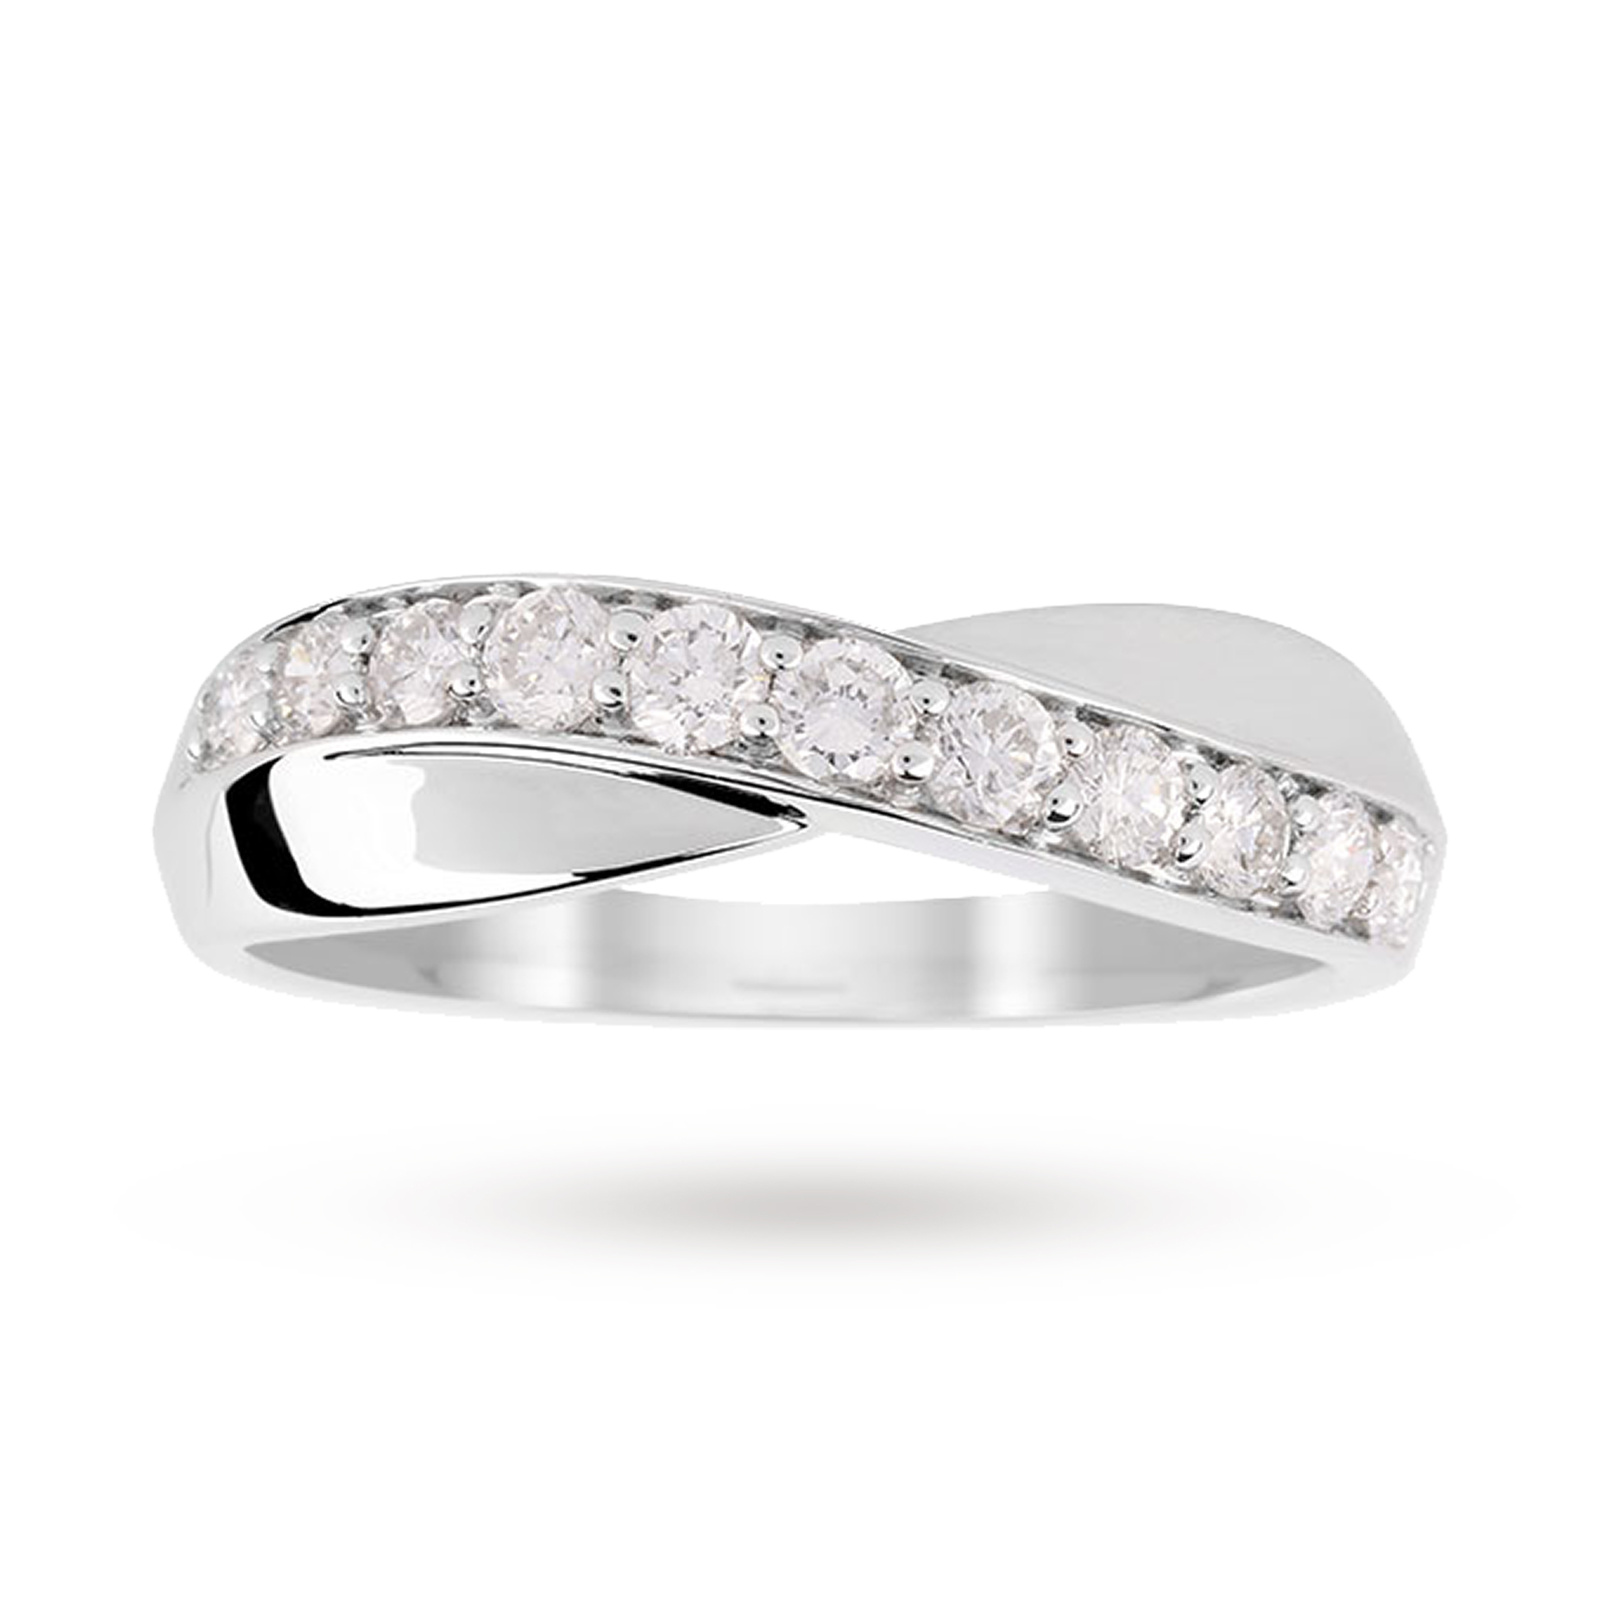 9ct White Gold Cross Over 0.50ct Diamond Ring - Ring Size J